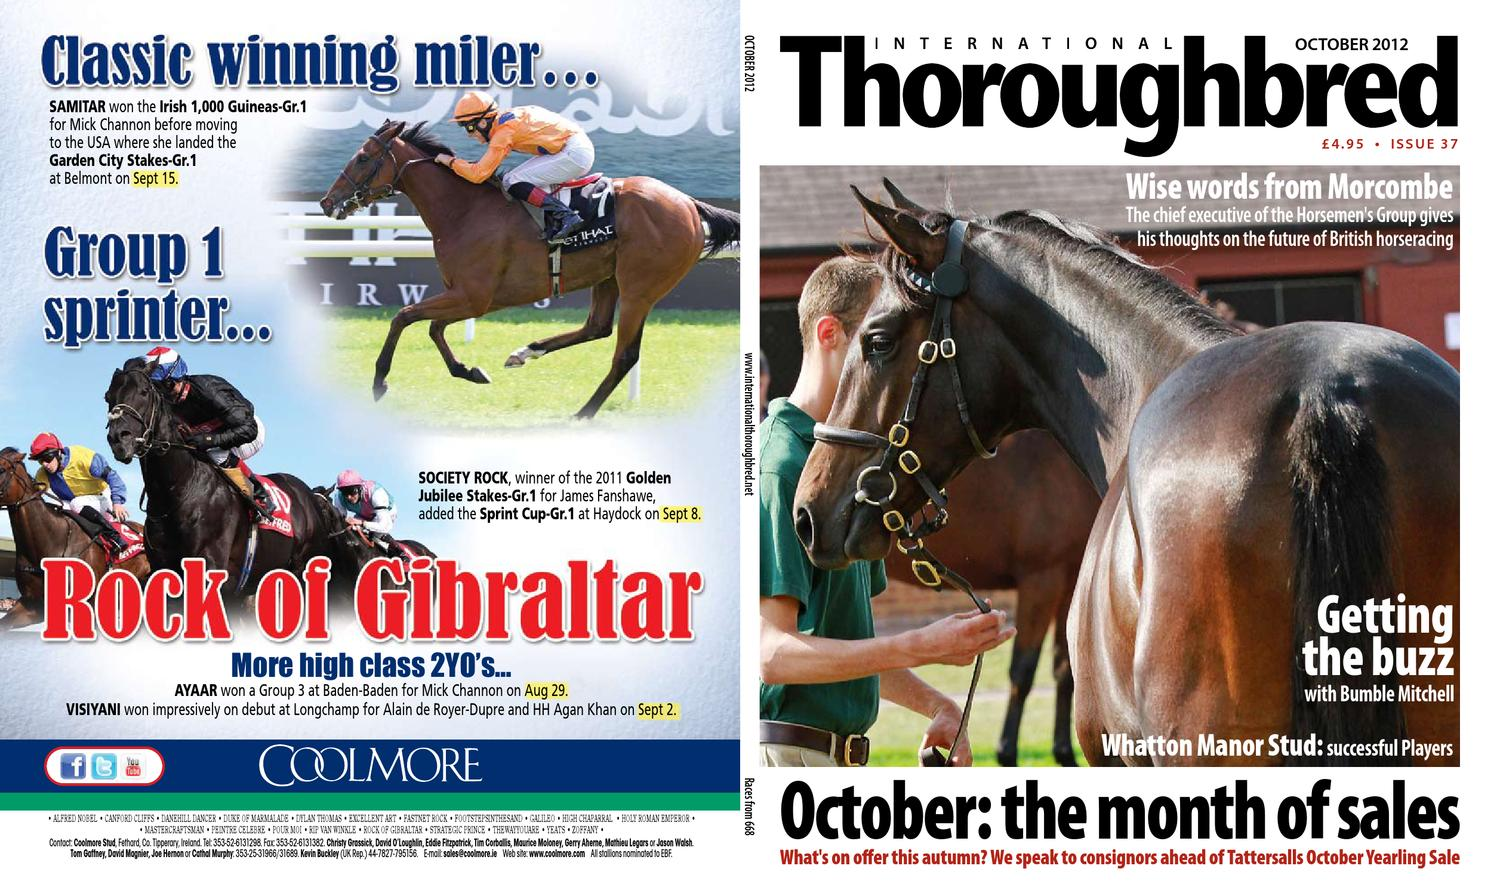 11c16be7899 International Thoroughbred October 2012 by Thoroughbred Publishing - issuu